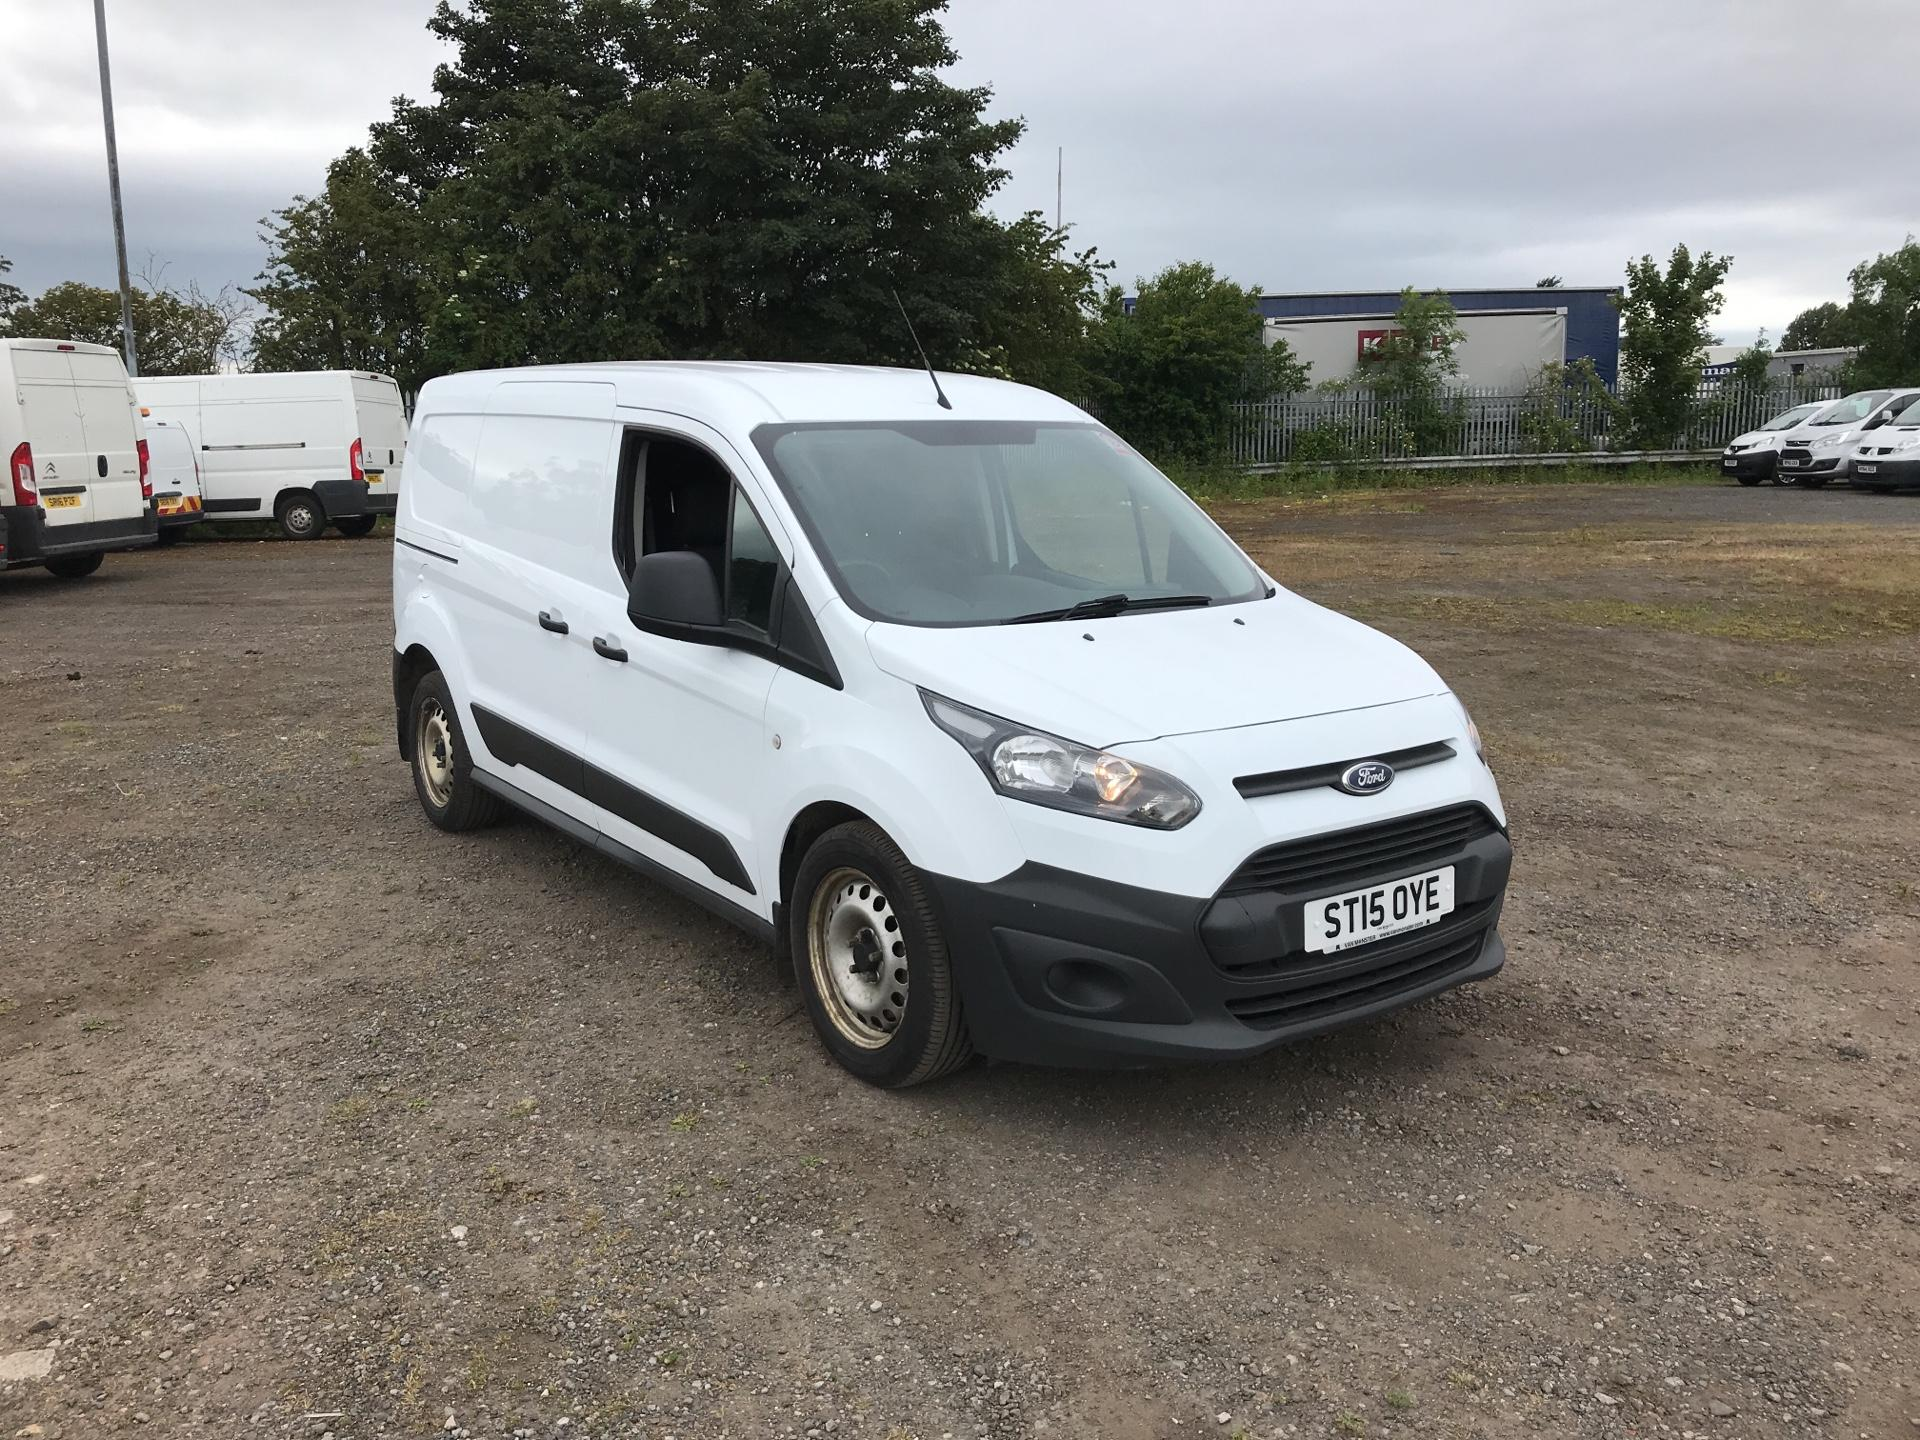 2015 Ford Transit Connect 1.6 Tdci 95Ps D/Cab Van (ST15OYE)